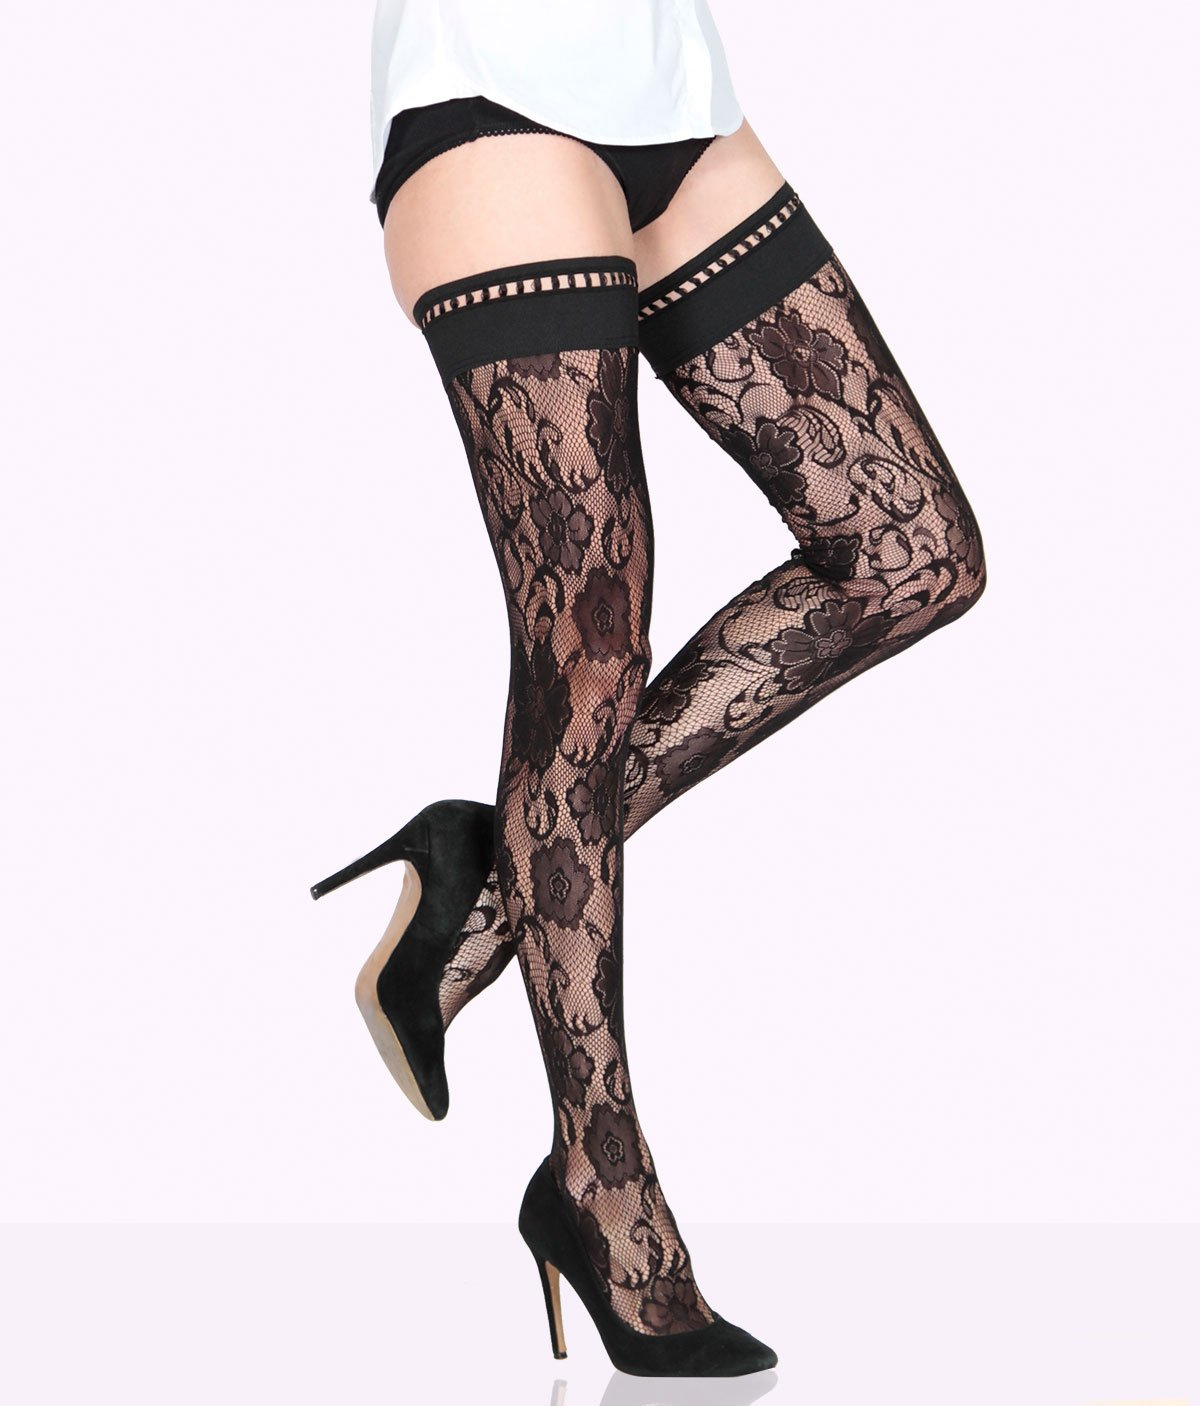 OTTAVIA lace stockings